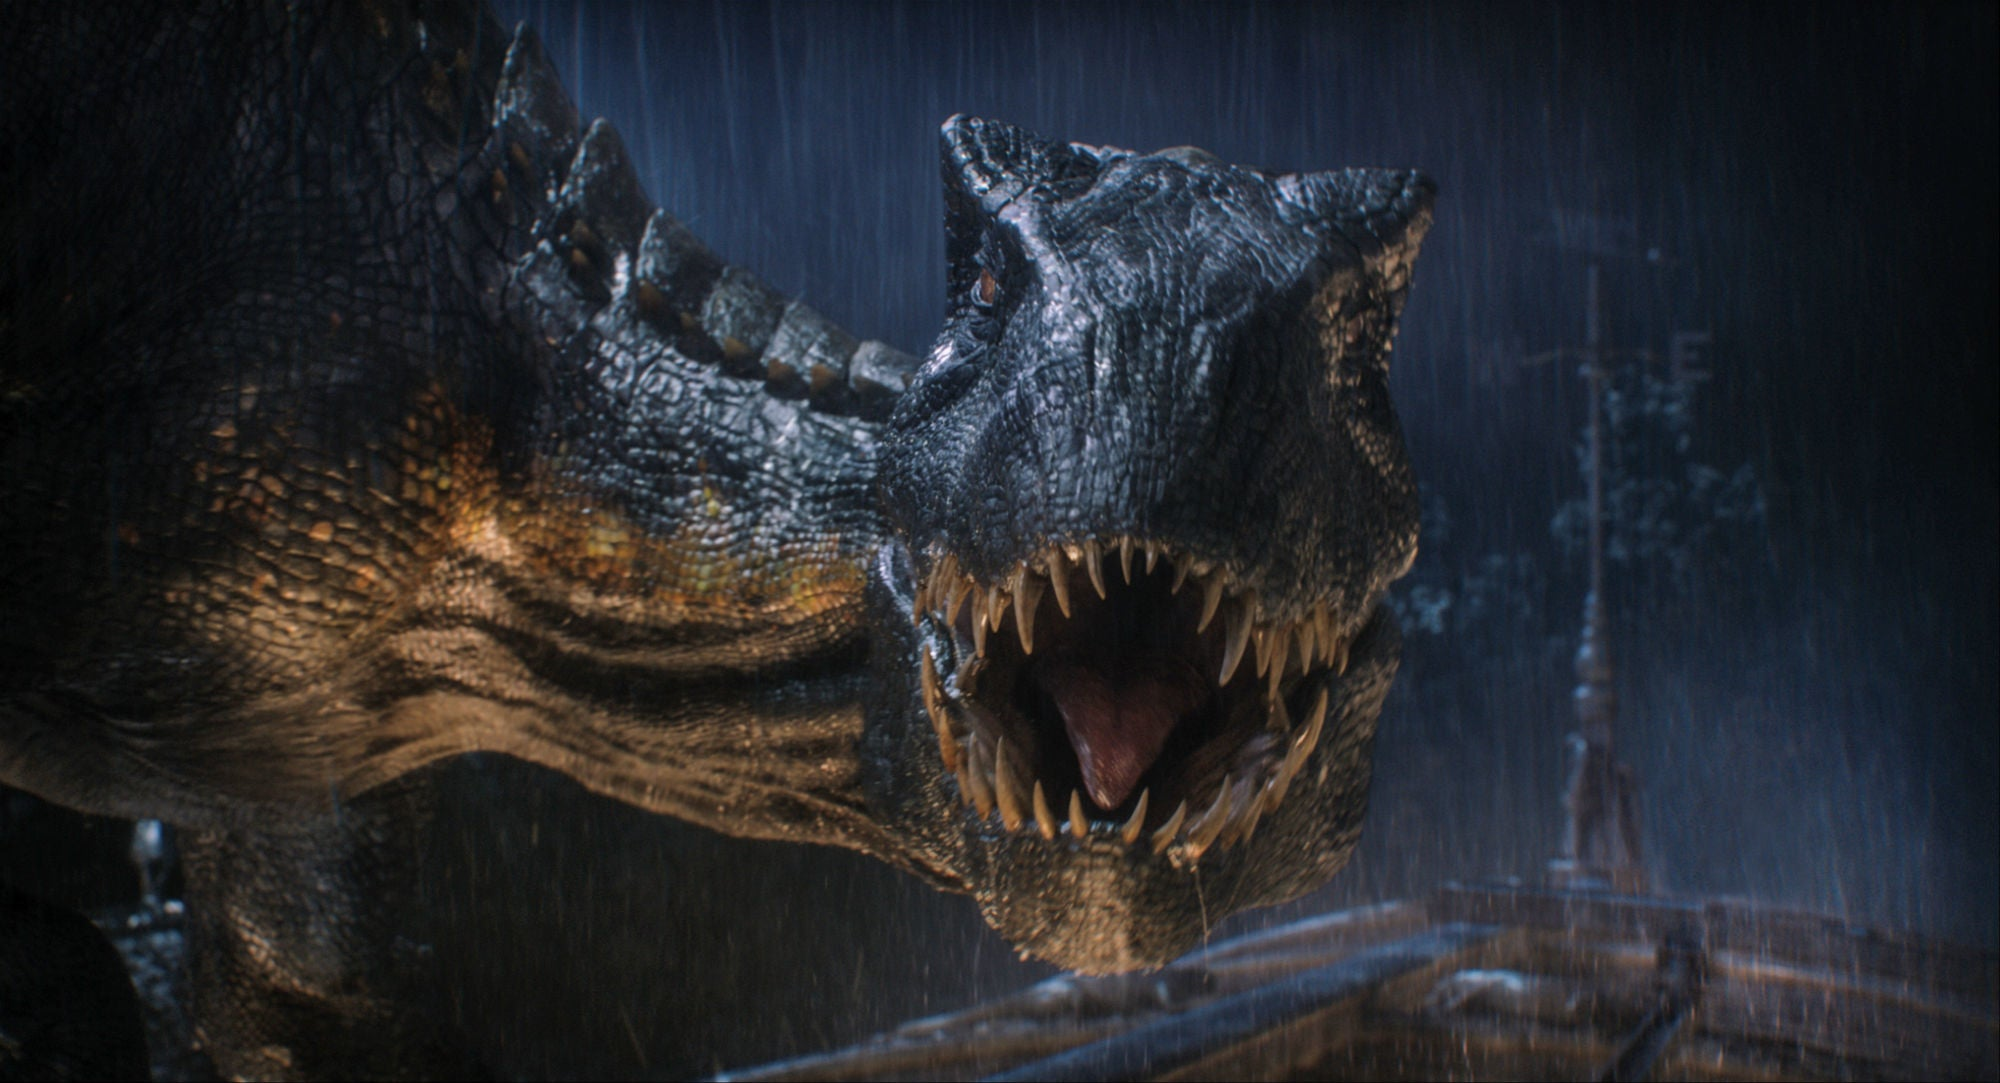 The Makers OfJurassic World: Fallen KingdomSolve Some Of The Film's Big Mysteries